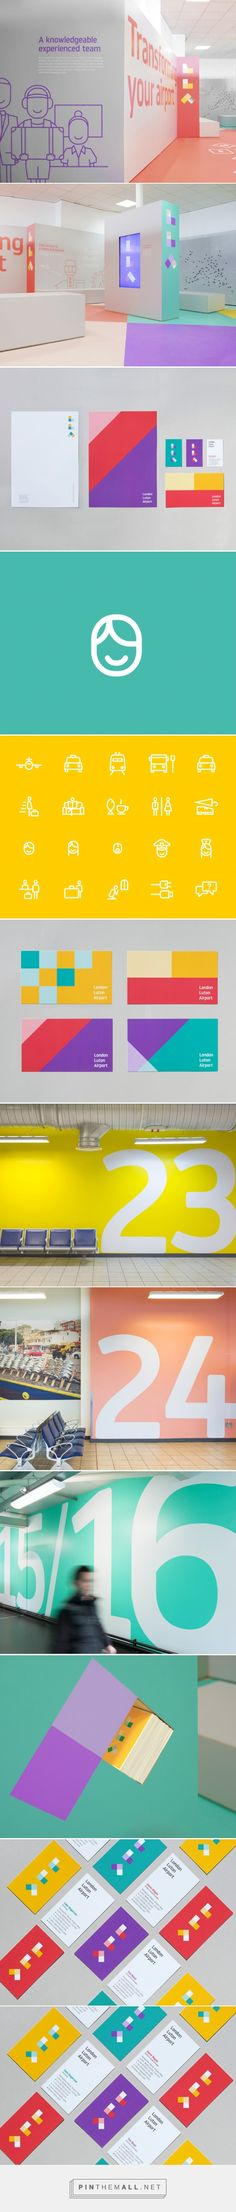 London Luton Airport Branding by Ico Design | Inspiration Grid | Design Inspiration - created via http://pinthemall.net